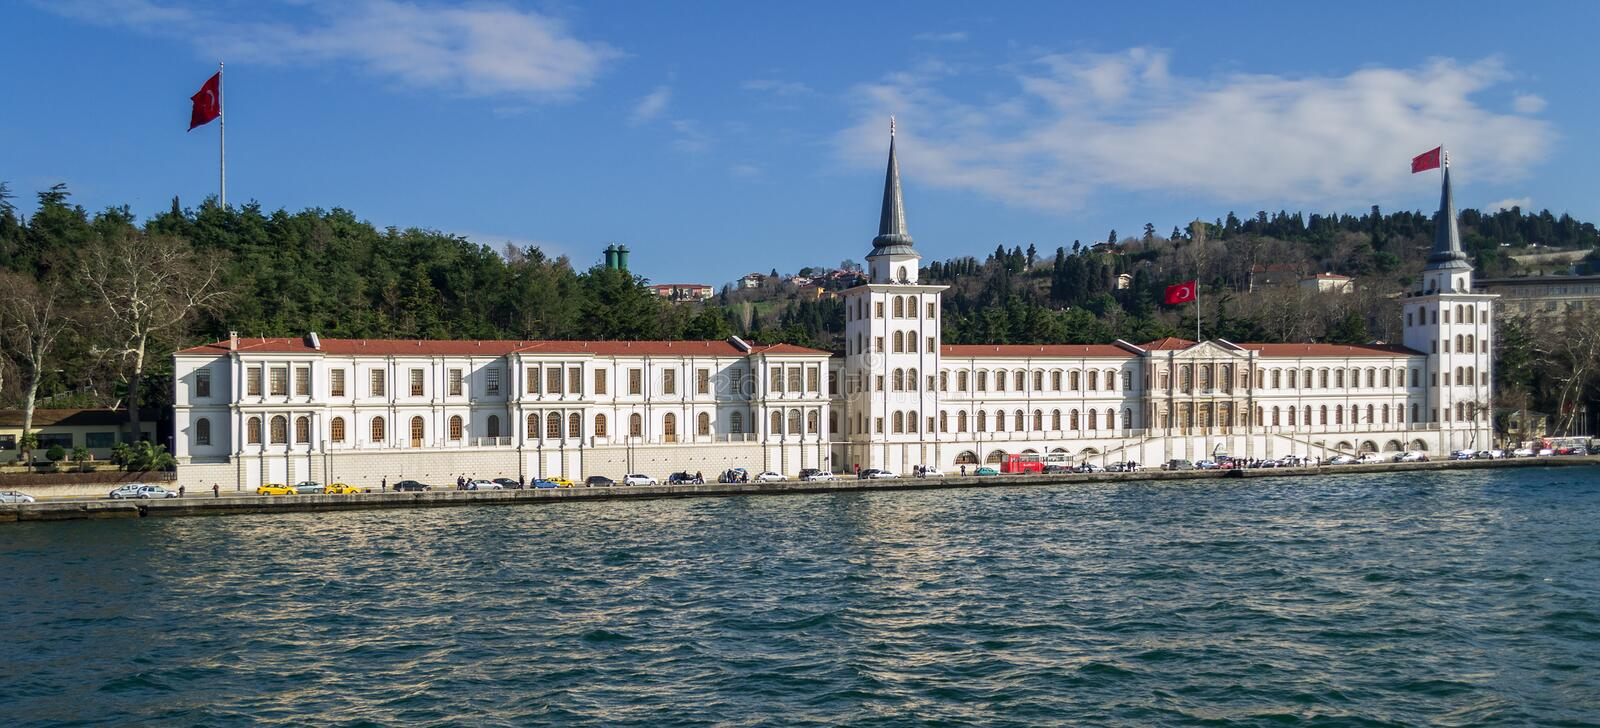 Kuleli Military High School with tower and flags of Turkey on shore of Bosphorus strait, Istanbul. Istanbul, Turkey - January 20 2013: Kuleli Military High stock photography